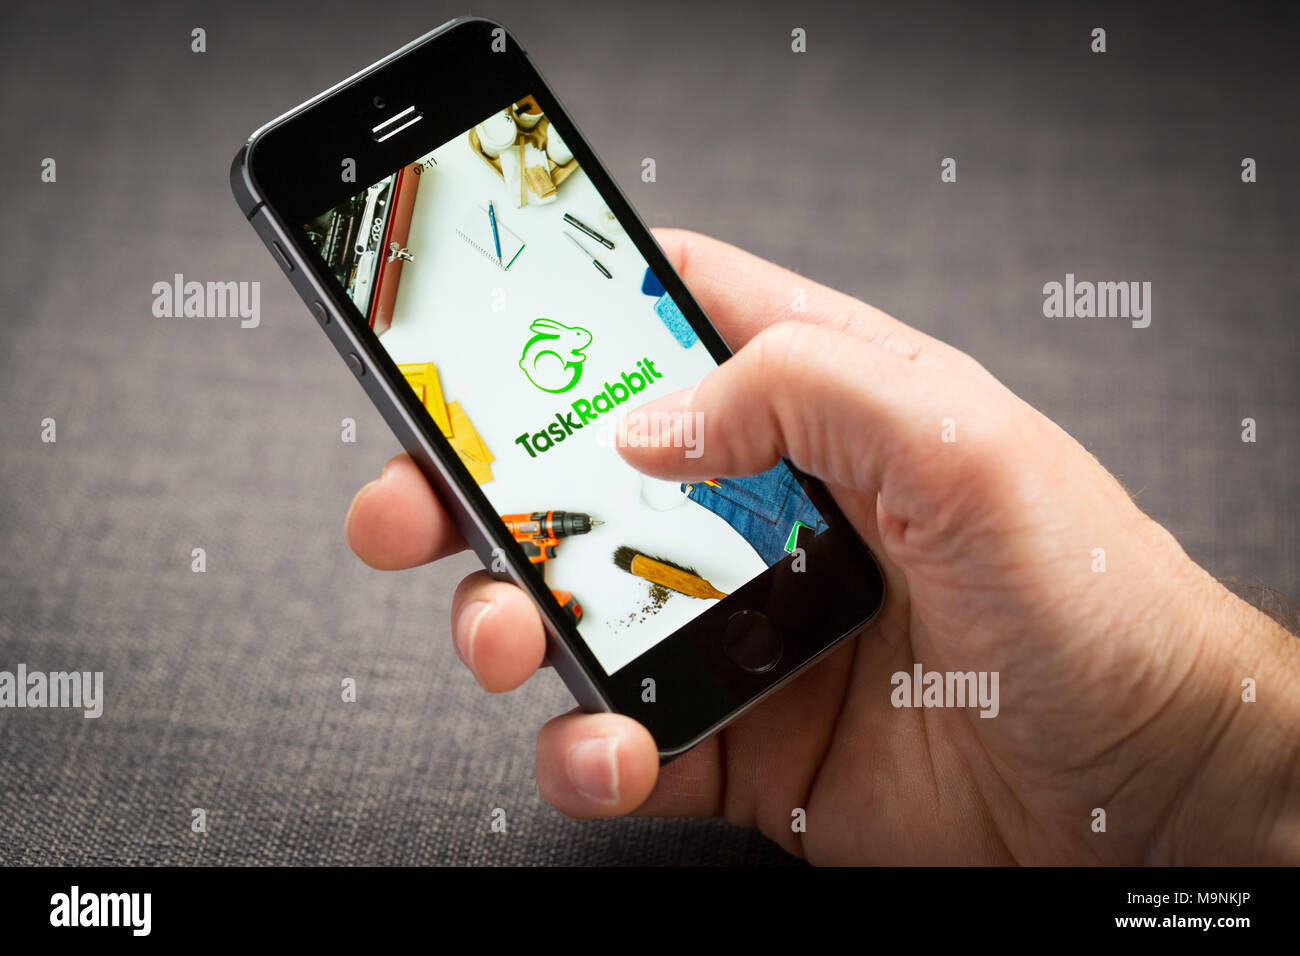 Task Rabbit app on an iPhone - Stock Image